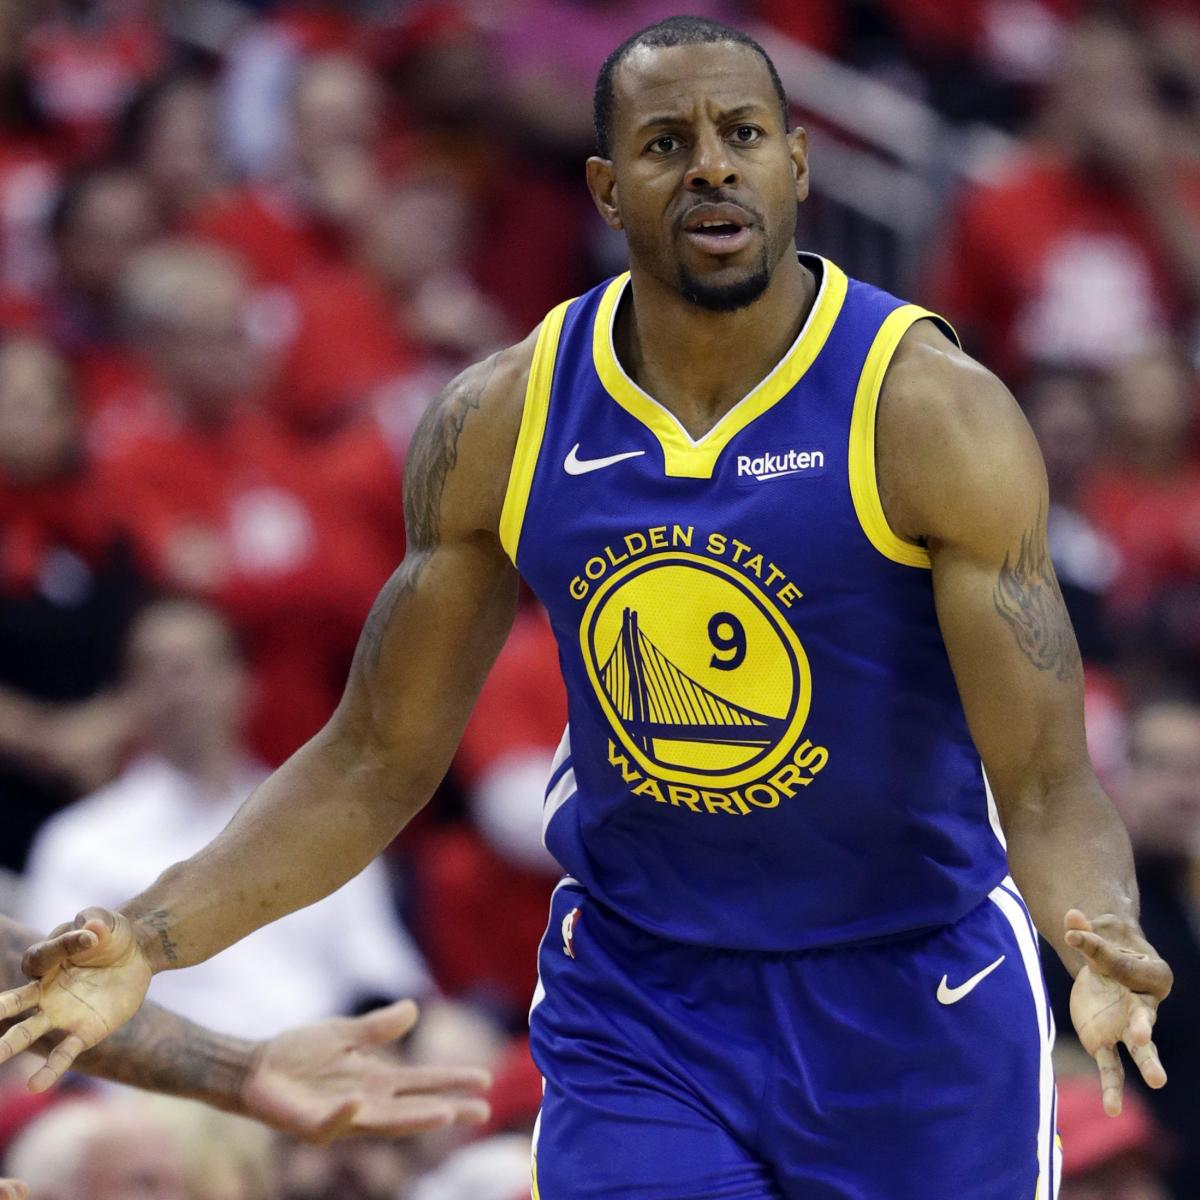 Warriors Come Out To Play Bleacher Report: Andre Iguodala Rumors: Rockets Interested If Grizzlies Buy